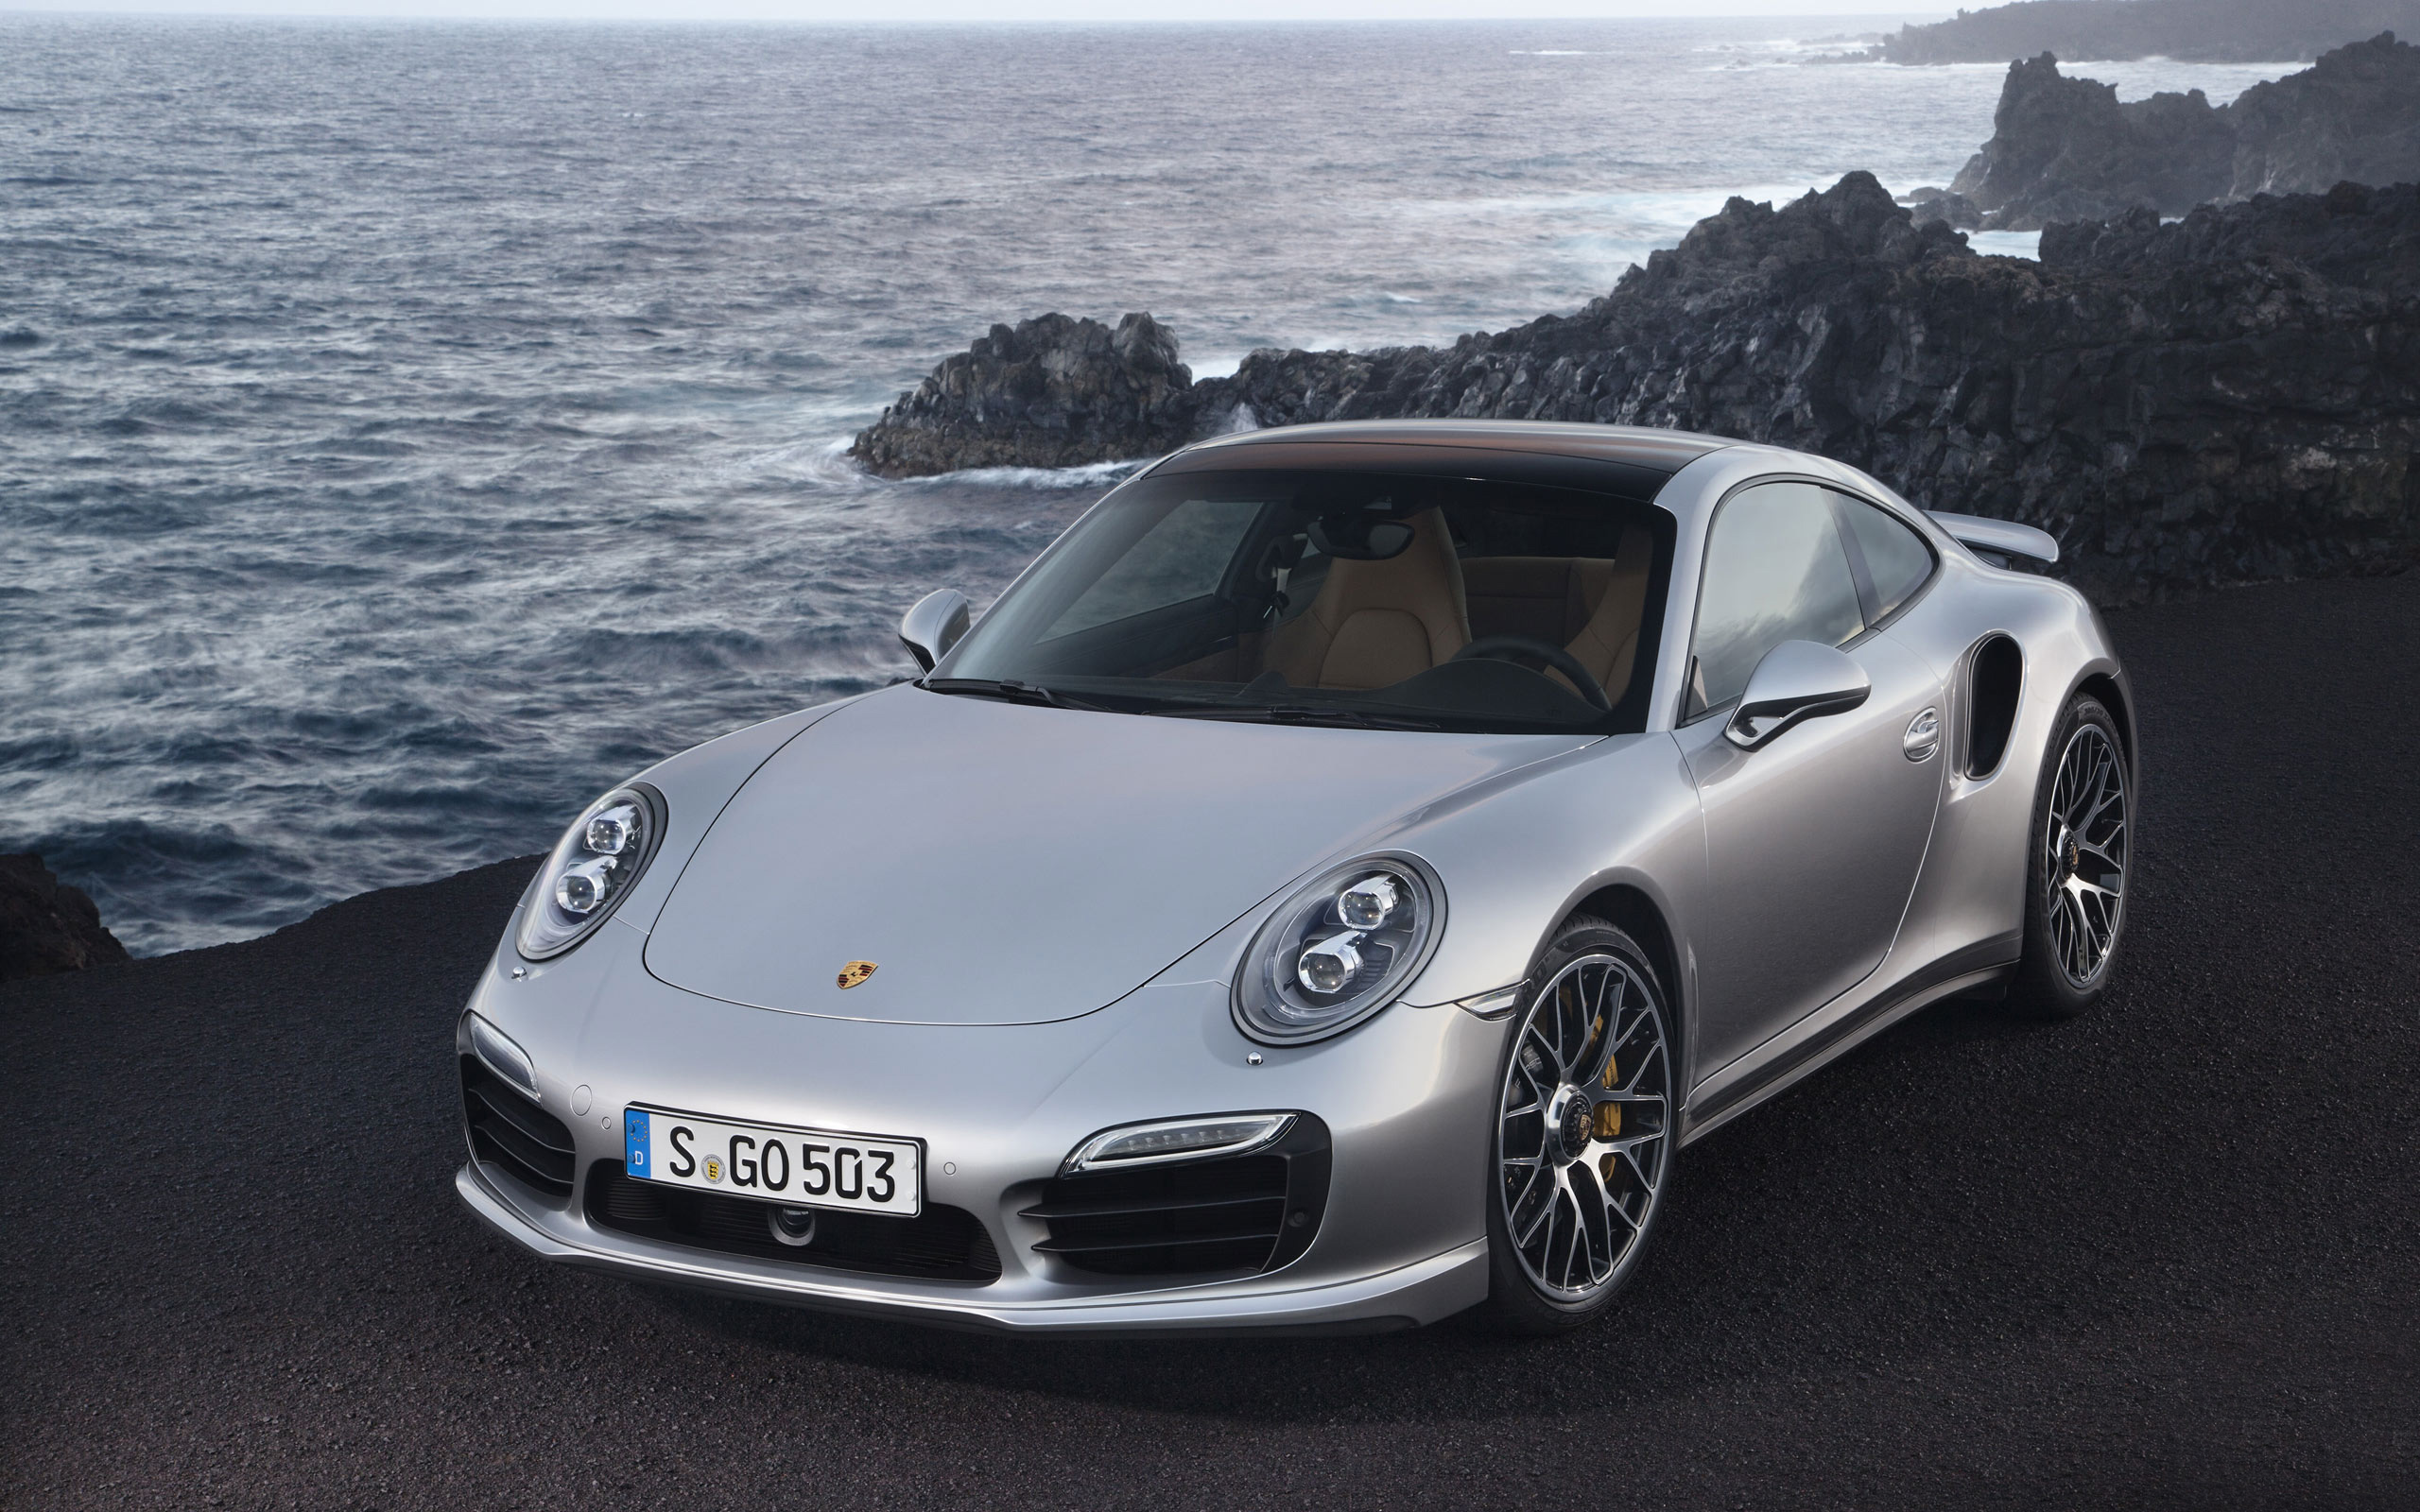 2014 porsche 911 turbo s wallpaper hd car wallpapers id. Black Bedroom Furniture Sets. Home Design Ideas